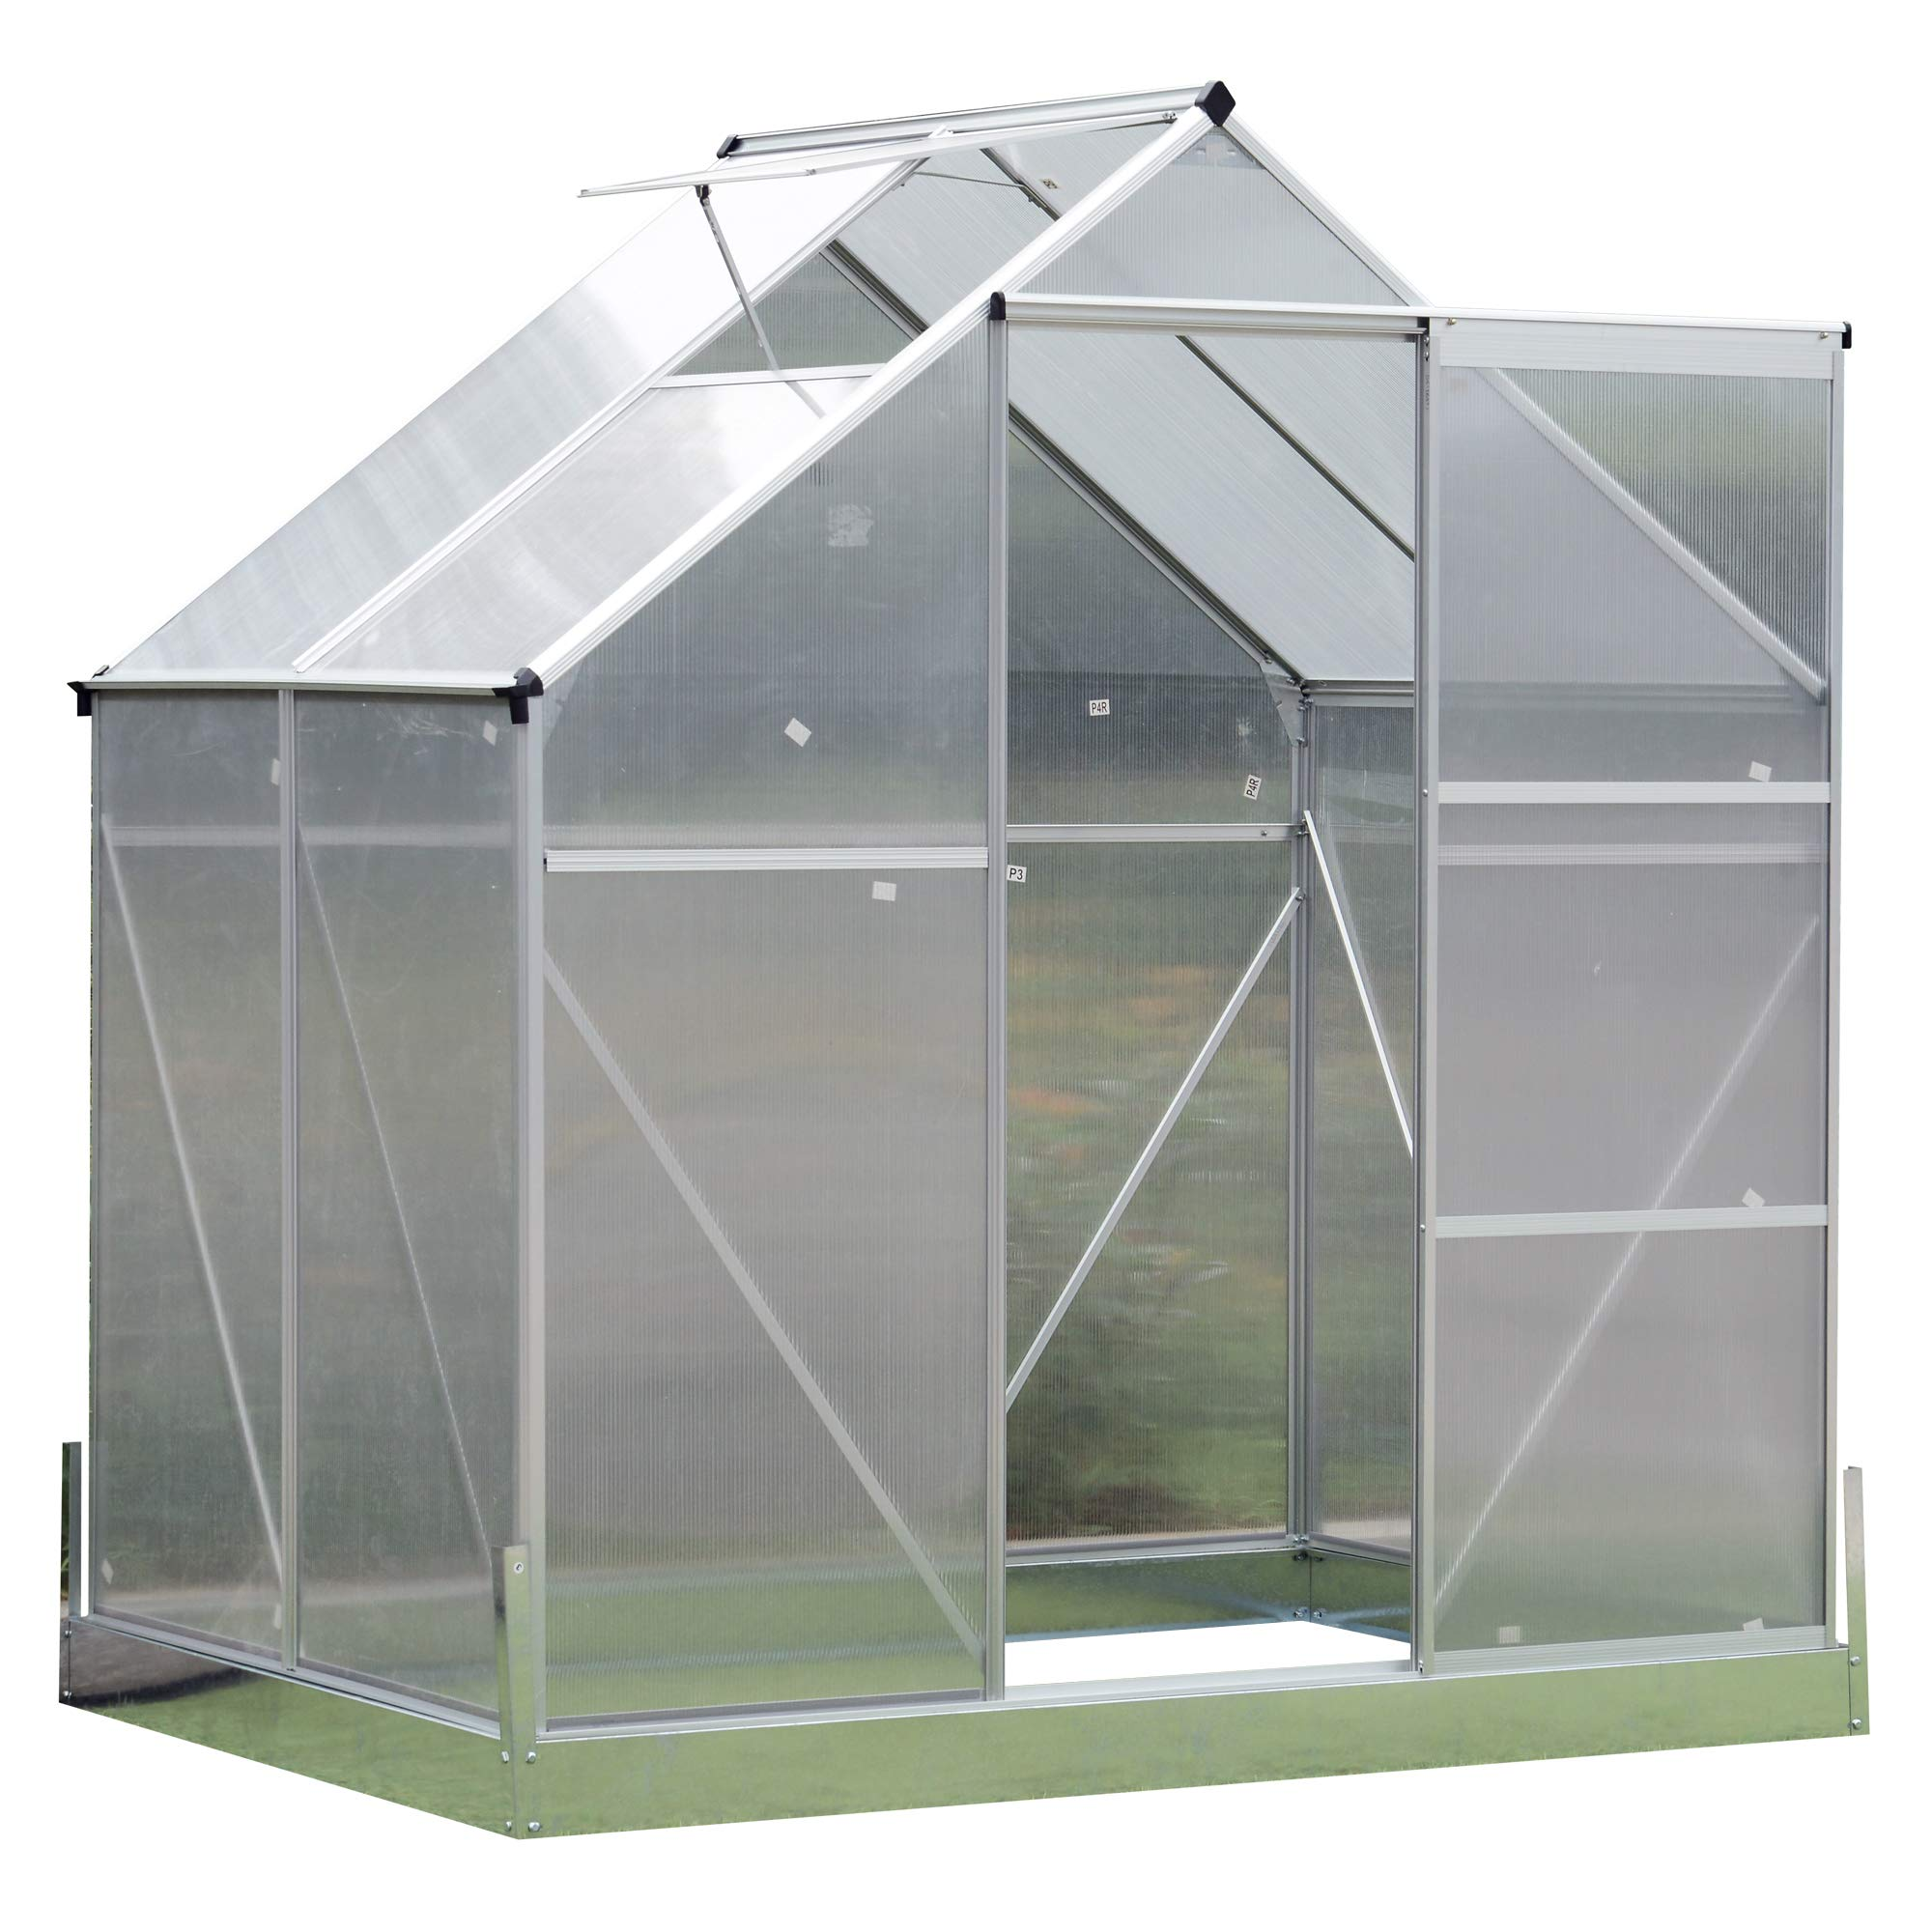 Outsunny Aluminum 4.25' L x 6.25'W x 7.2'H Polycarbonate Portable Walk-in Garden Greenhouse